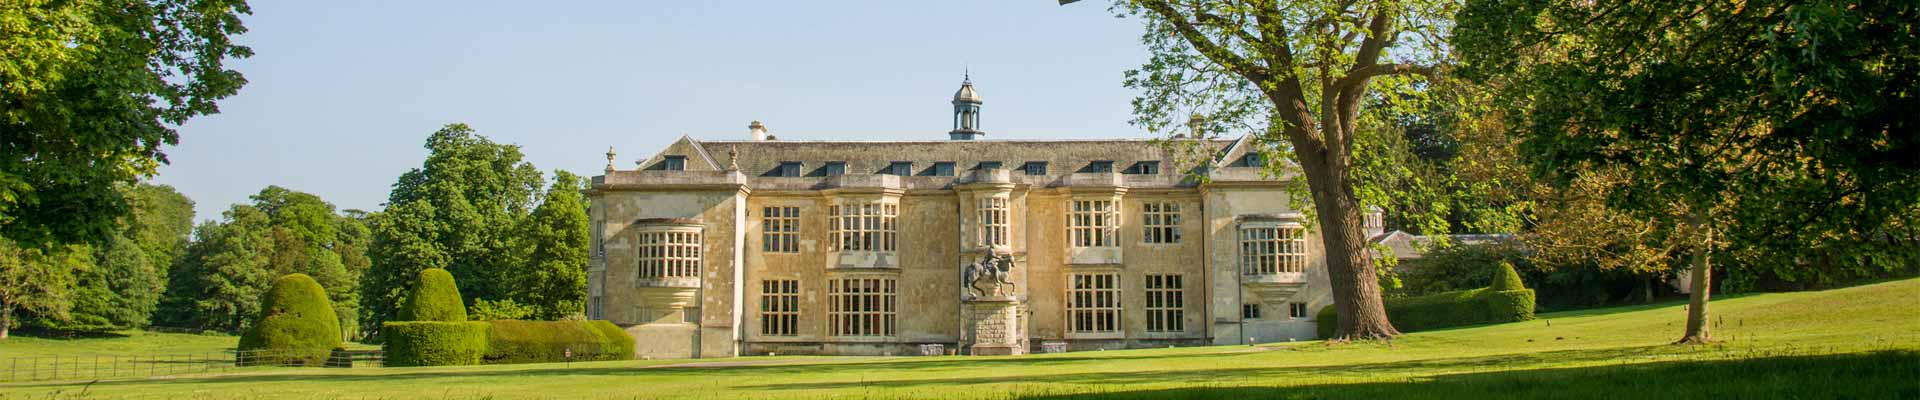 Image of Hartwell House